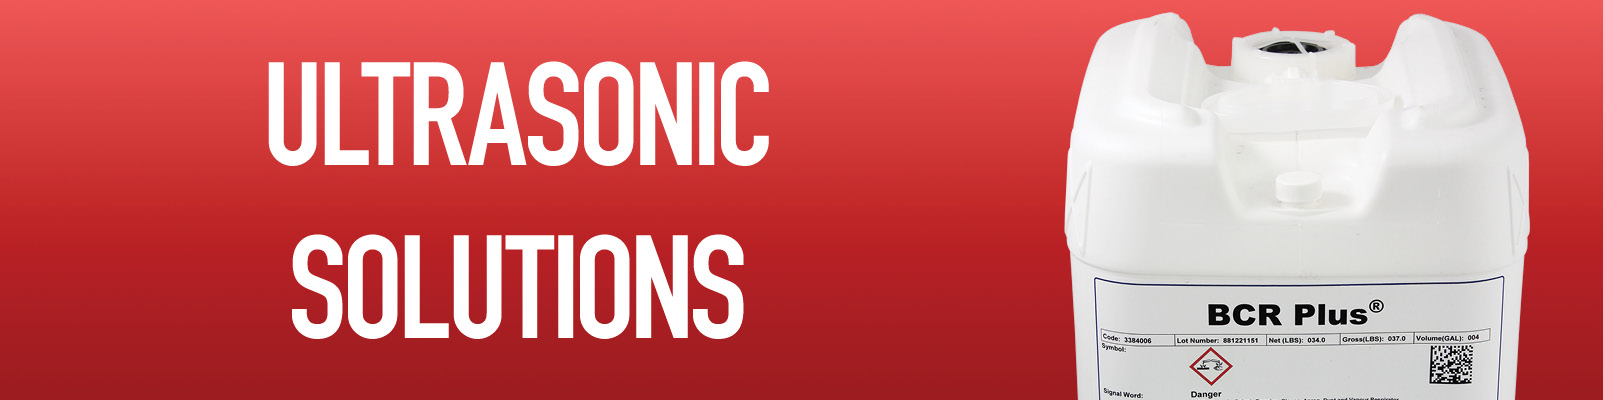 Ultrasonic Solutions